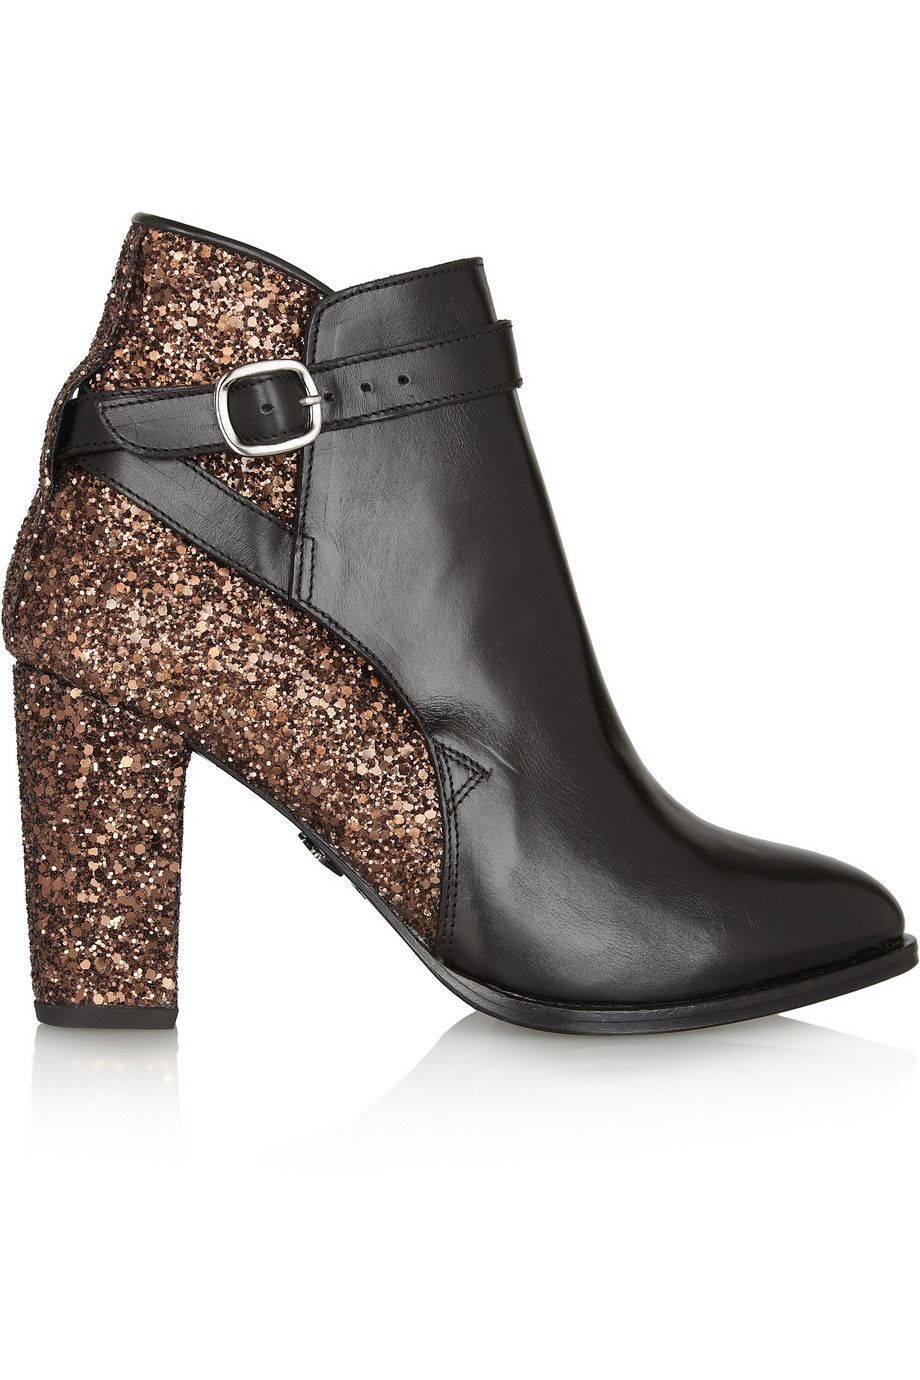 buy cheap websites cheap sale online Markus Lupfer Glitter Ankle Boots free shipping shopping online good selling online SvUKIFWd